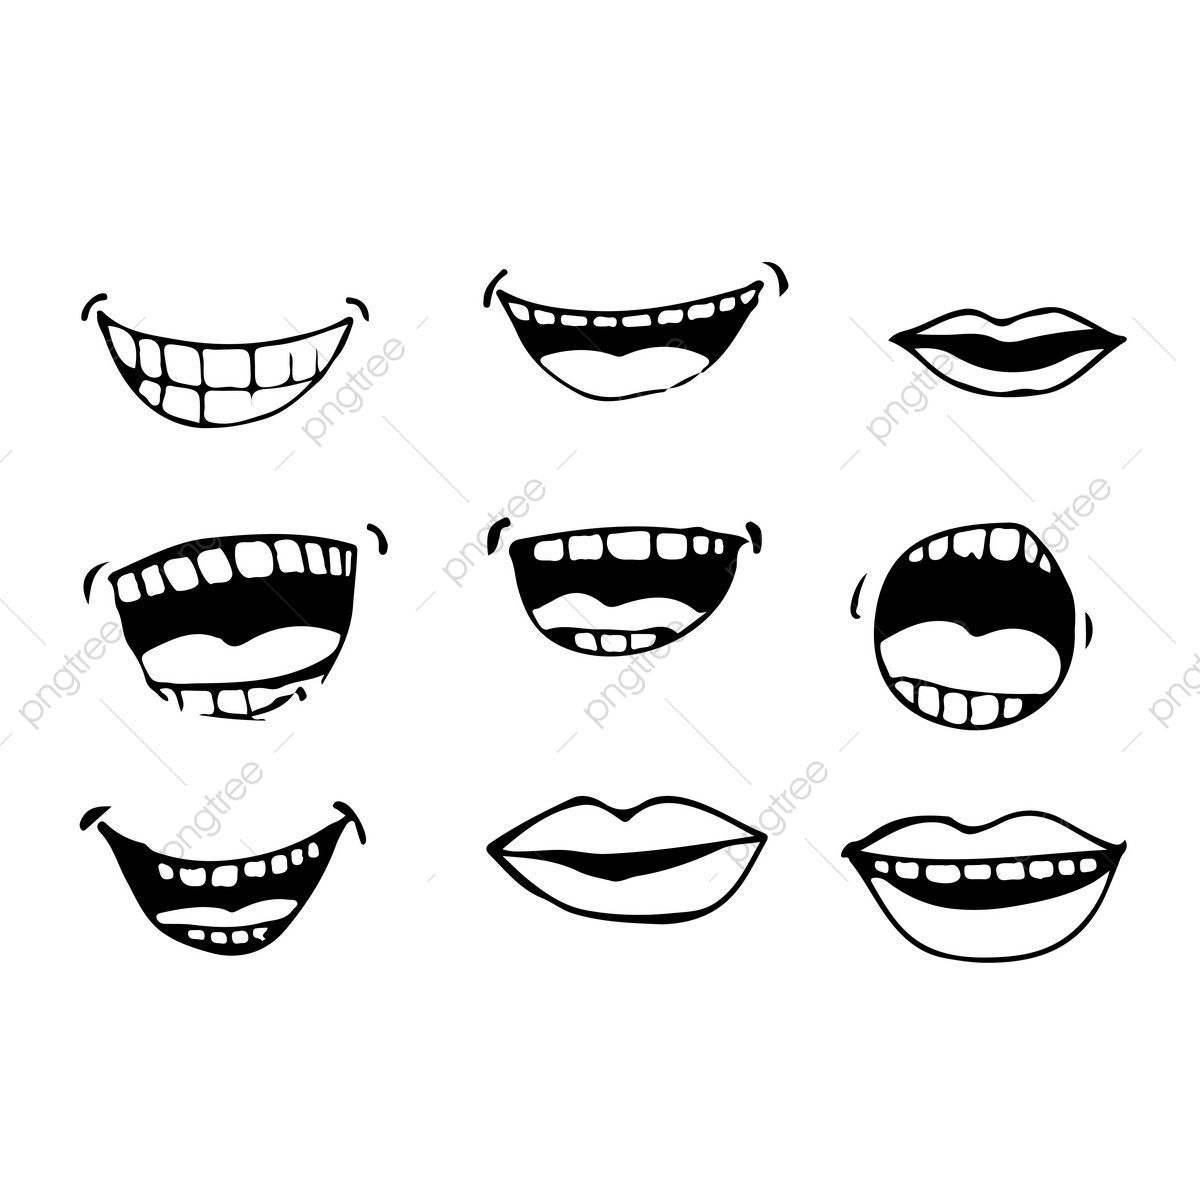 Download This Cartoon Mouth Icon Cartoon Set Mouth Transparent Png Or Vector File For Free Pngtree Has Mil Cartoon Mouths Icon Illustration Icon Set Design